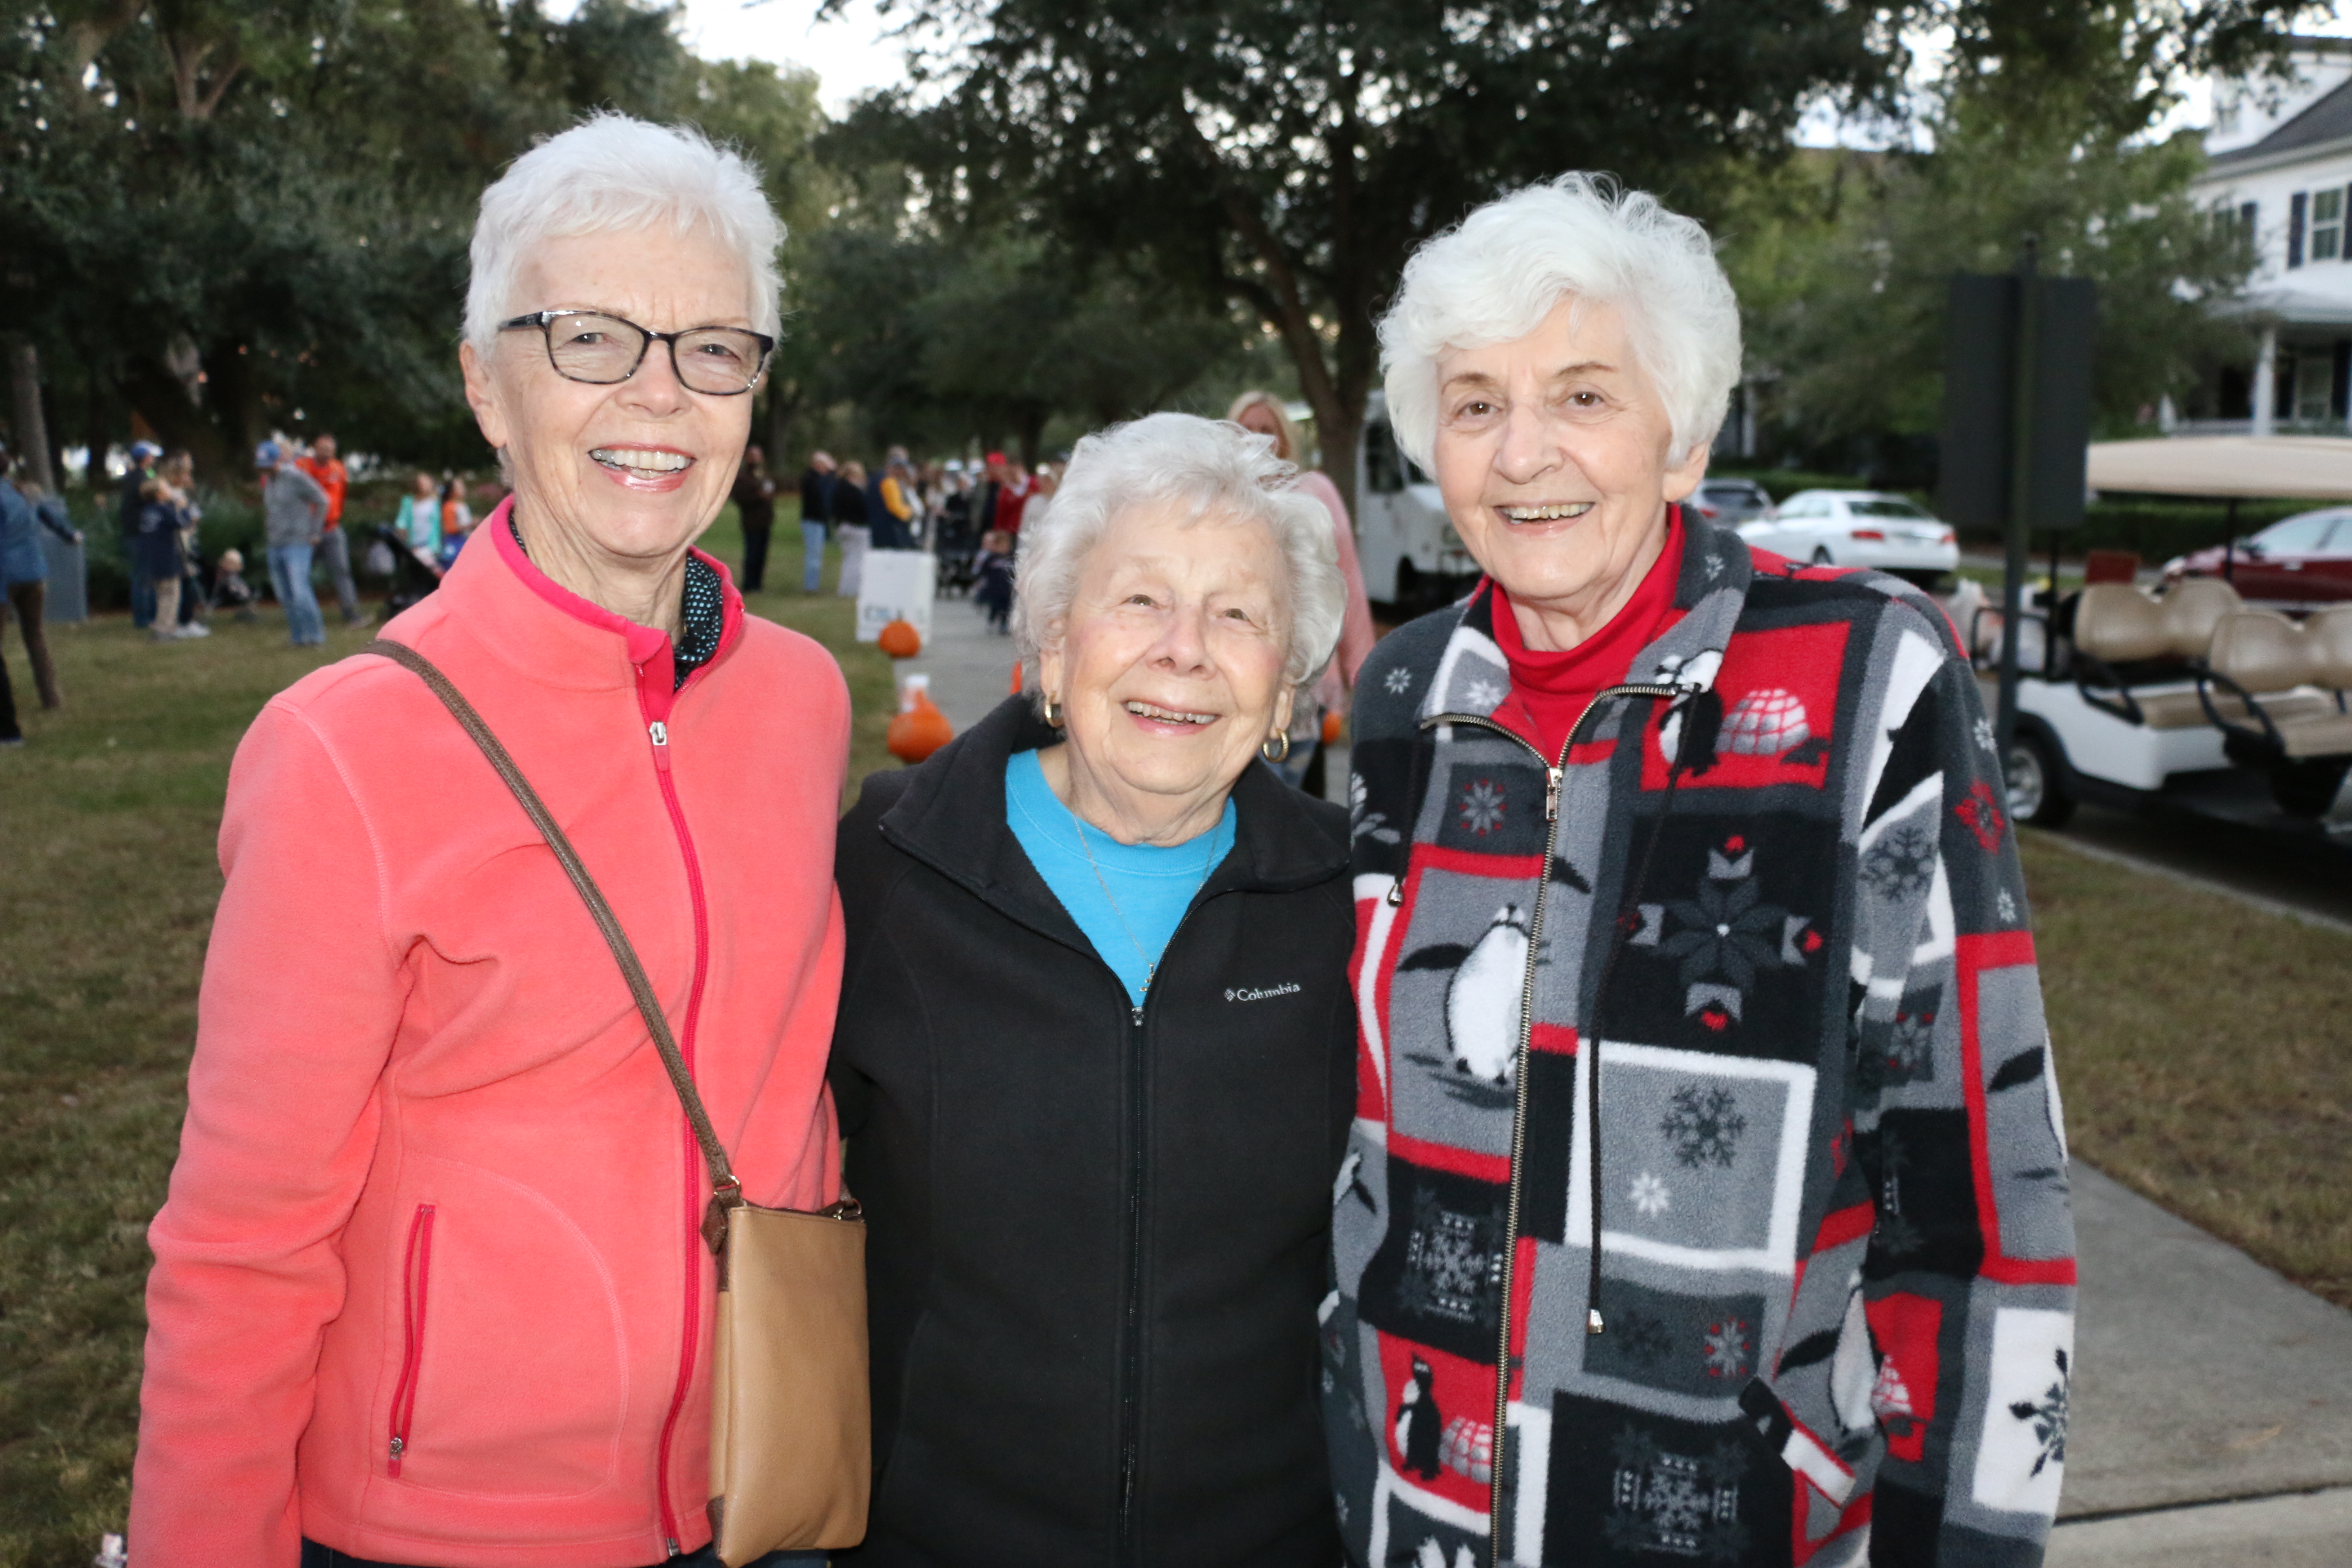 Daniel Pointe residents Linda McDonald, Mary Koschoff and Emie Mehard were among many viewing the sparkling displays.